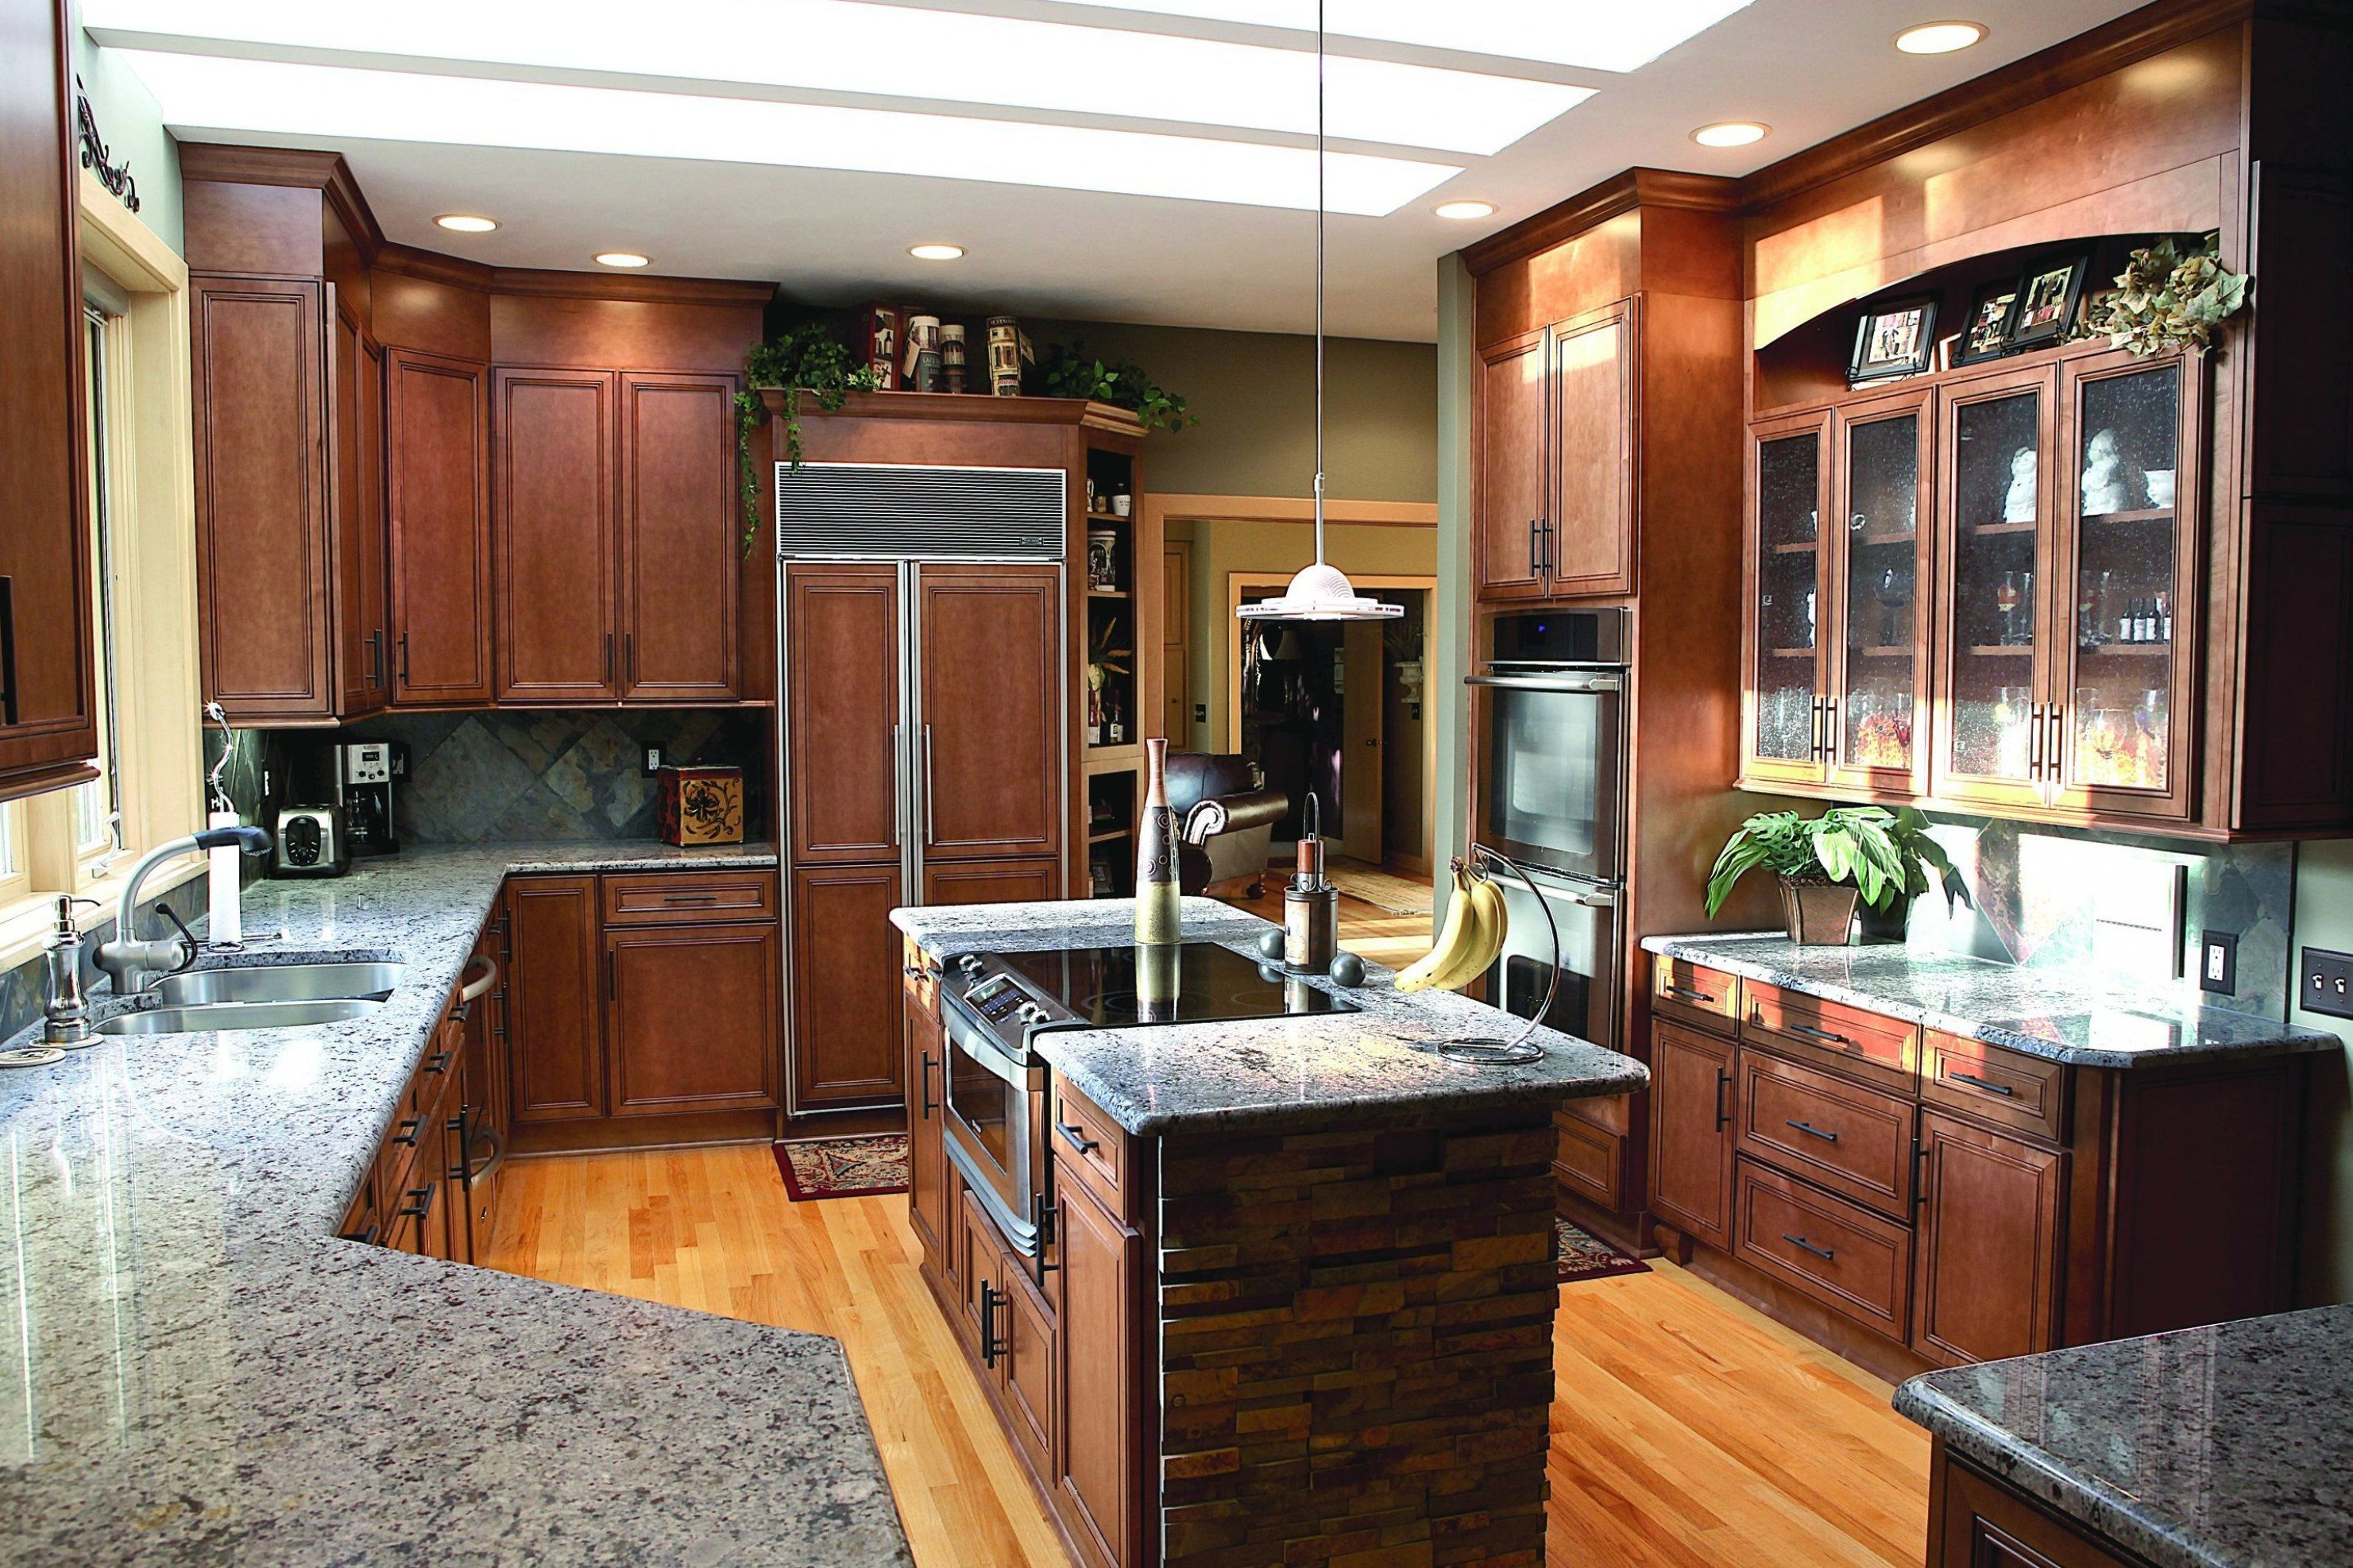 Press Room Wellborn Cabinet Inc Introduces Harmony And Cabinet Makeover Remodel Cabinets Kitc In 2020 Kitchen Cabinets Pictures Kitchen Cabinet Styles Kitchen Design